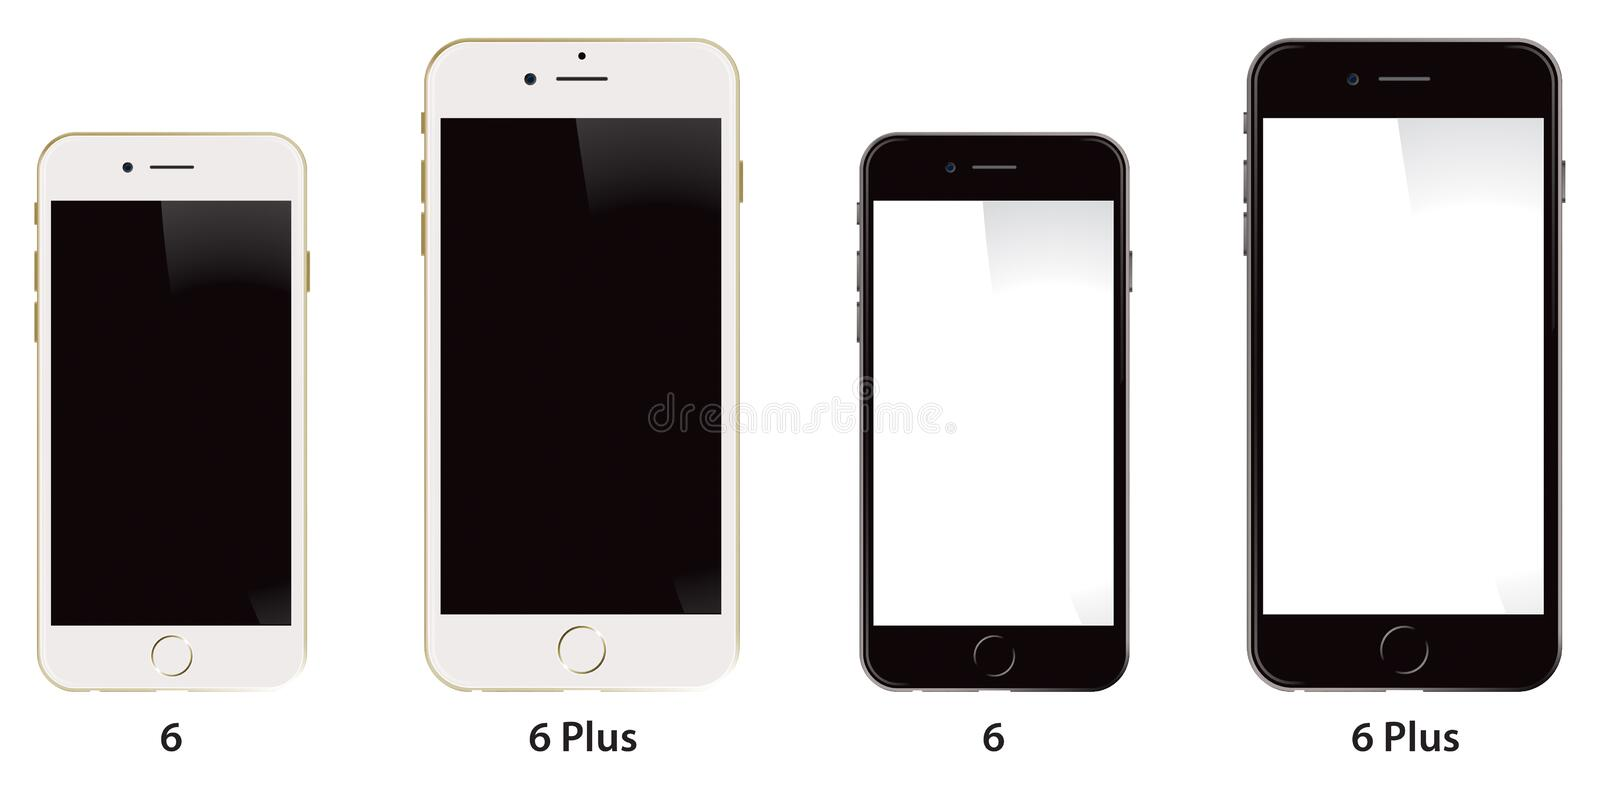 IPhone 6 de Apple positivo